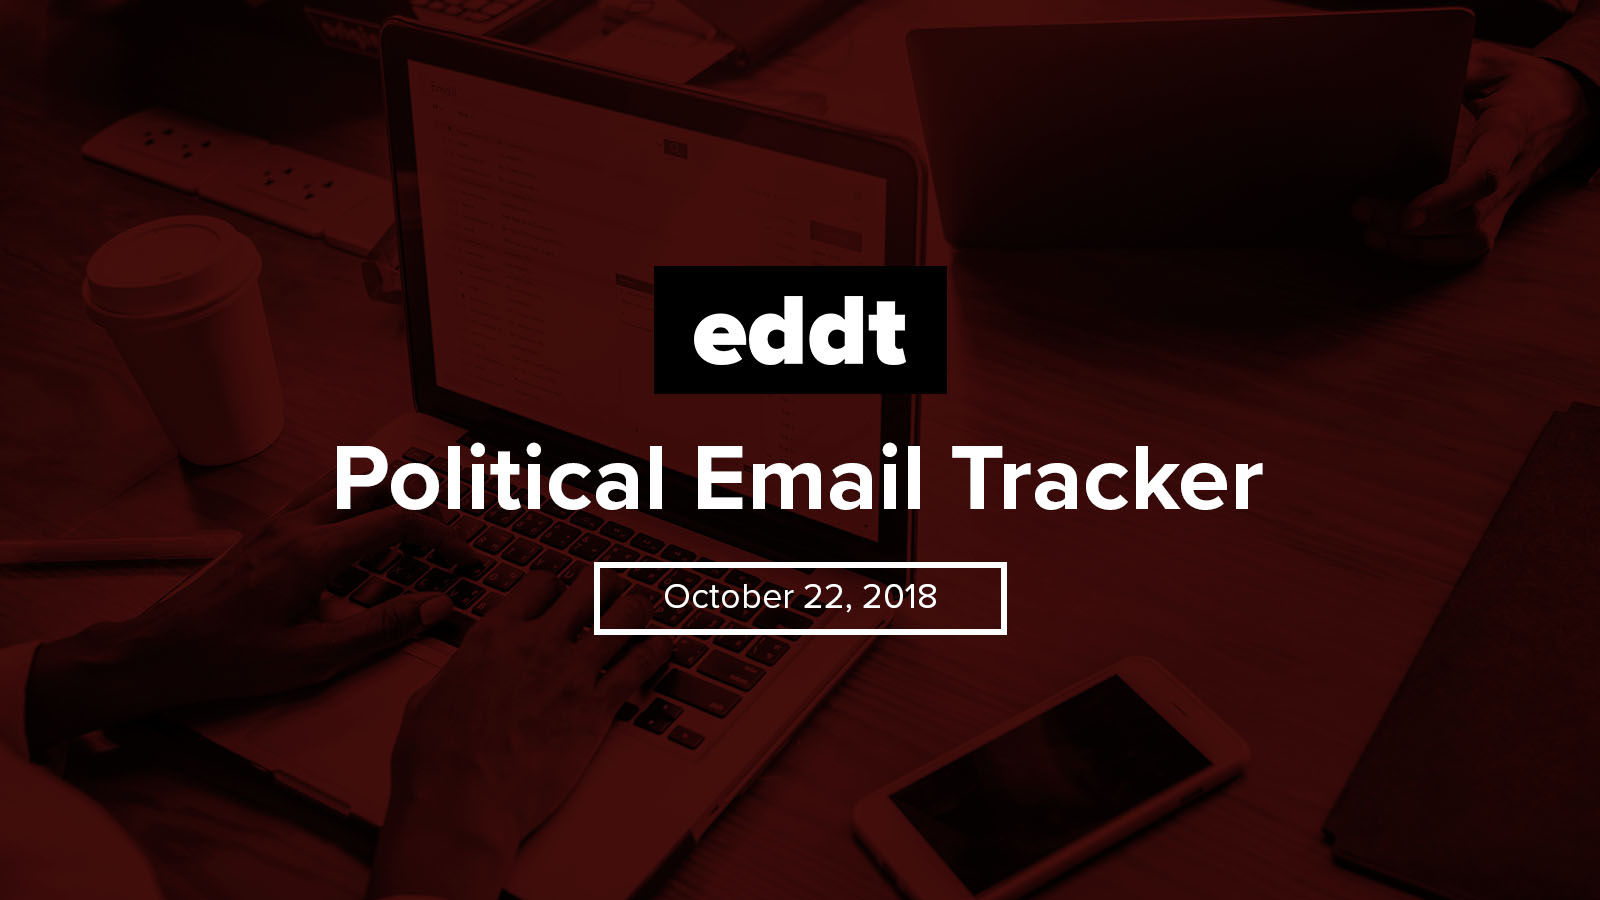 Political Email Tracker - October 22, 2018